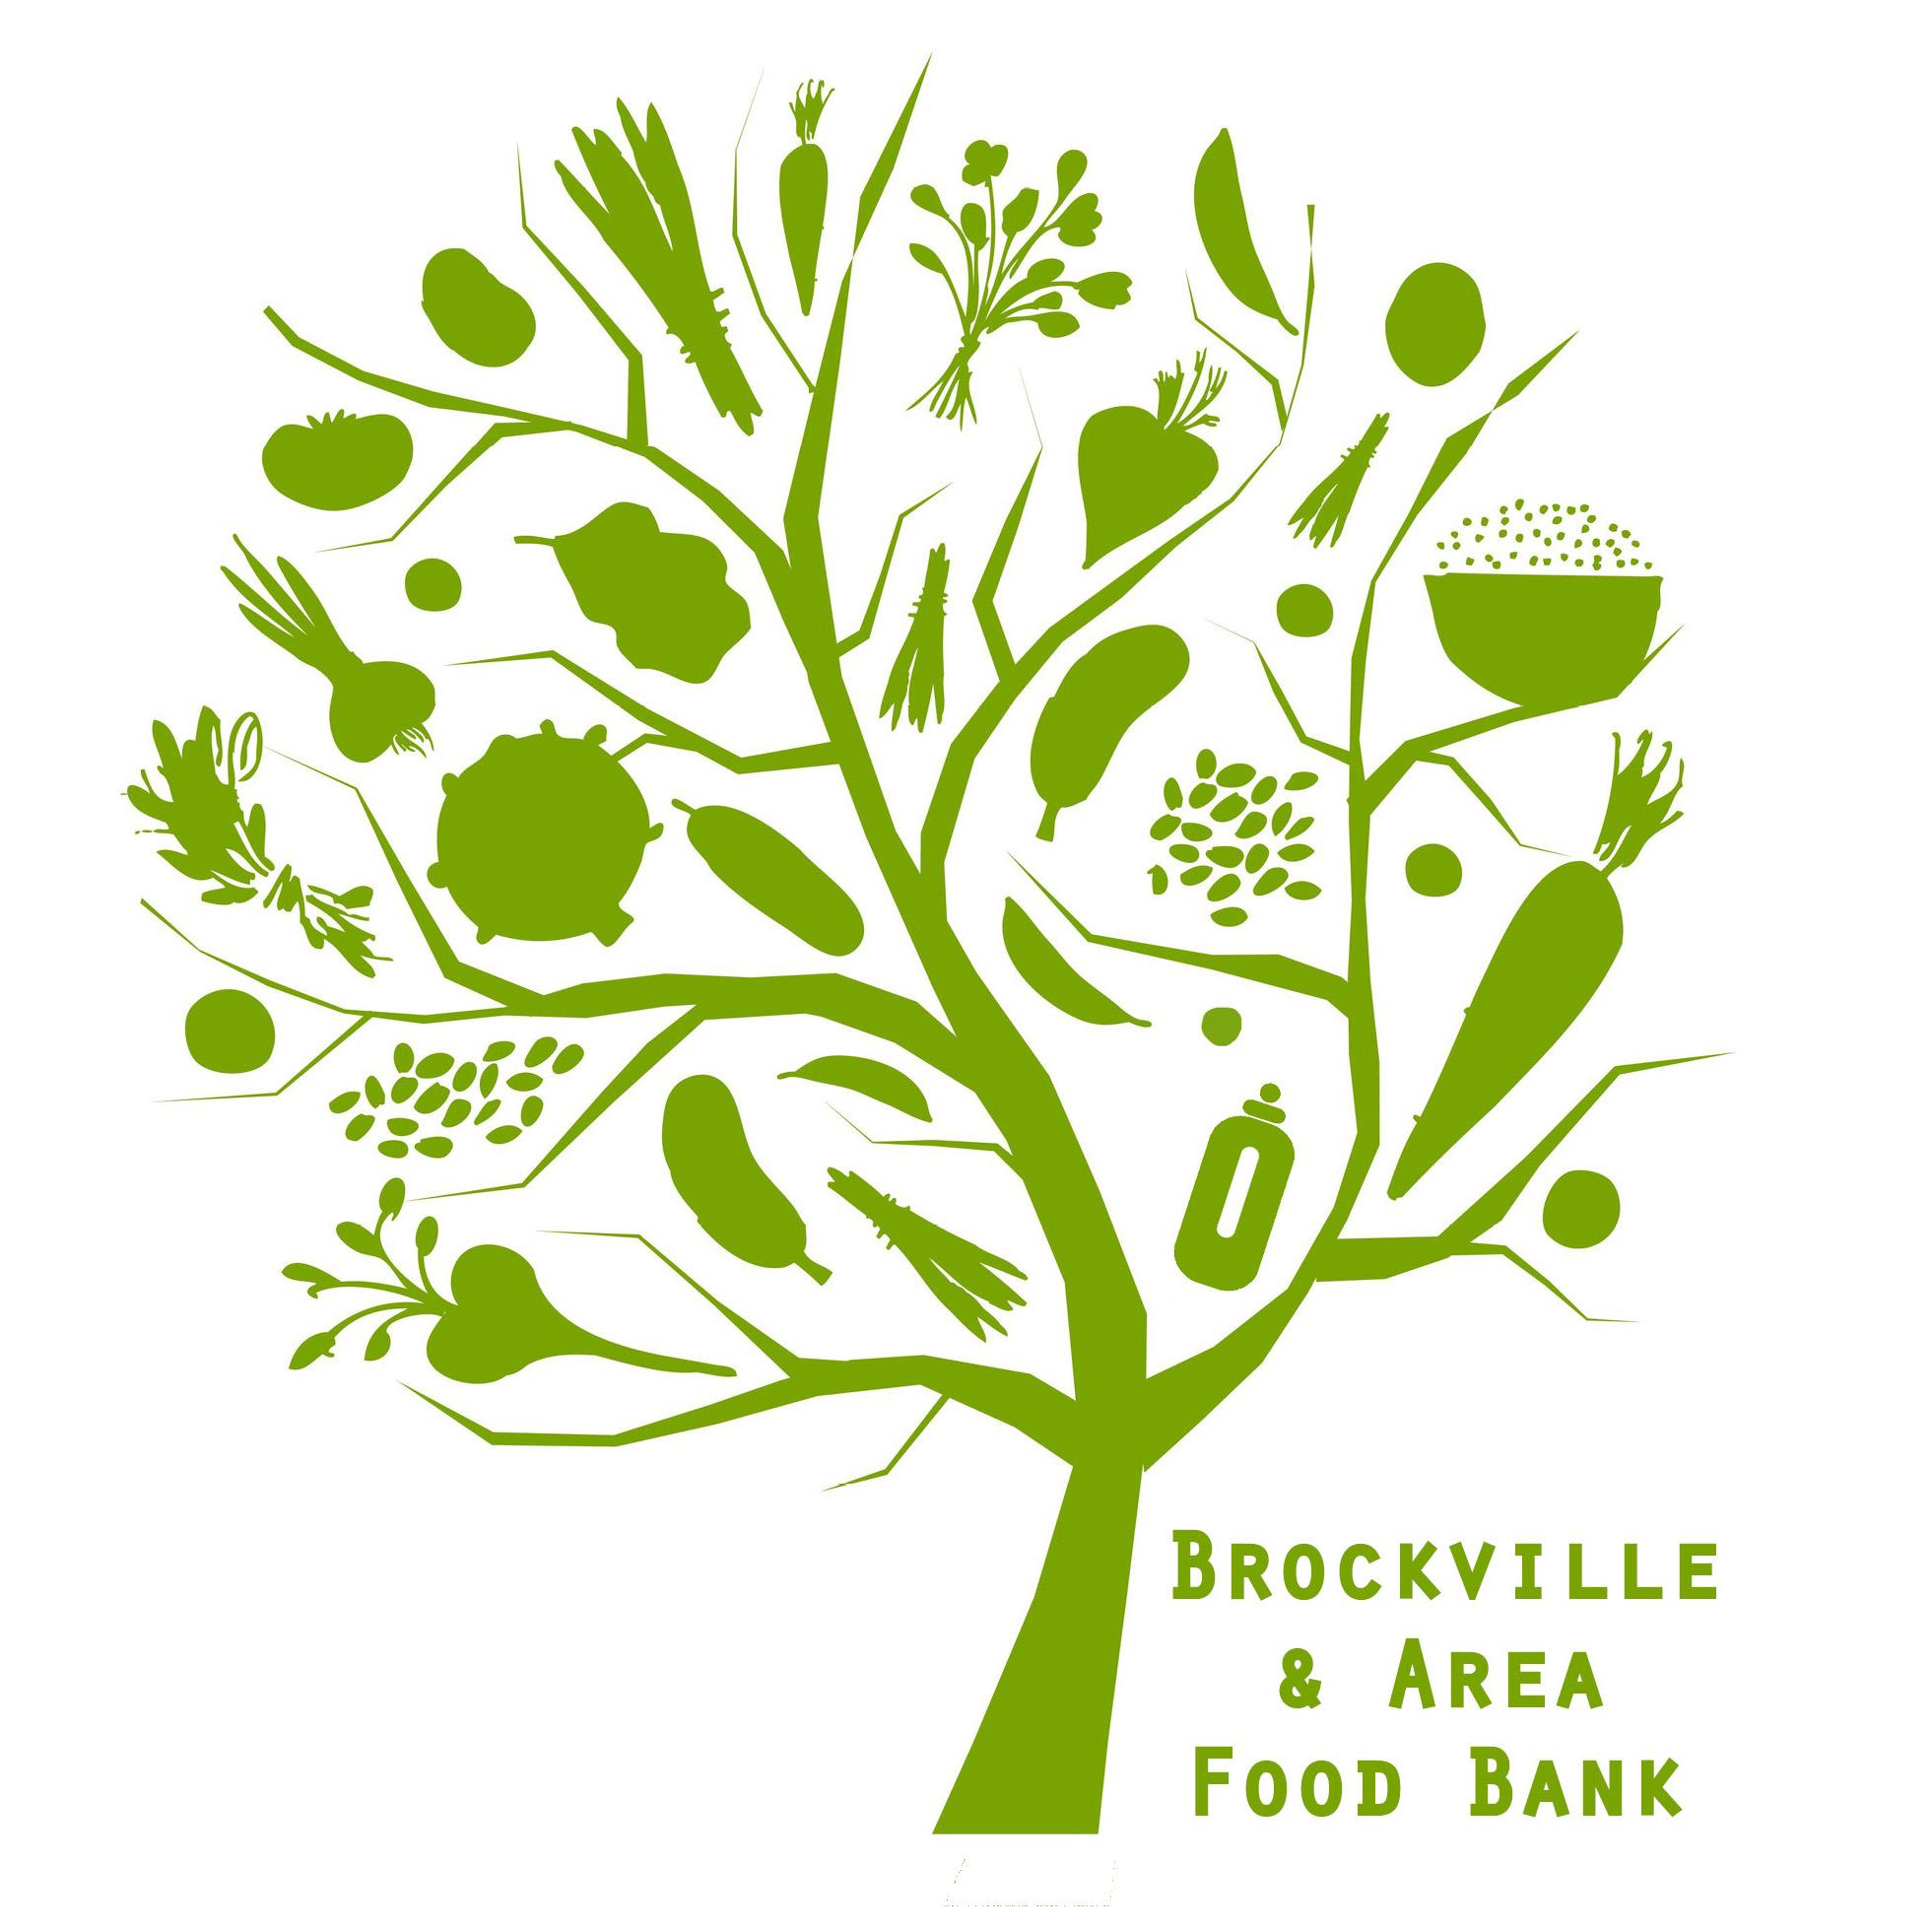 Brockville and Area Food Bank